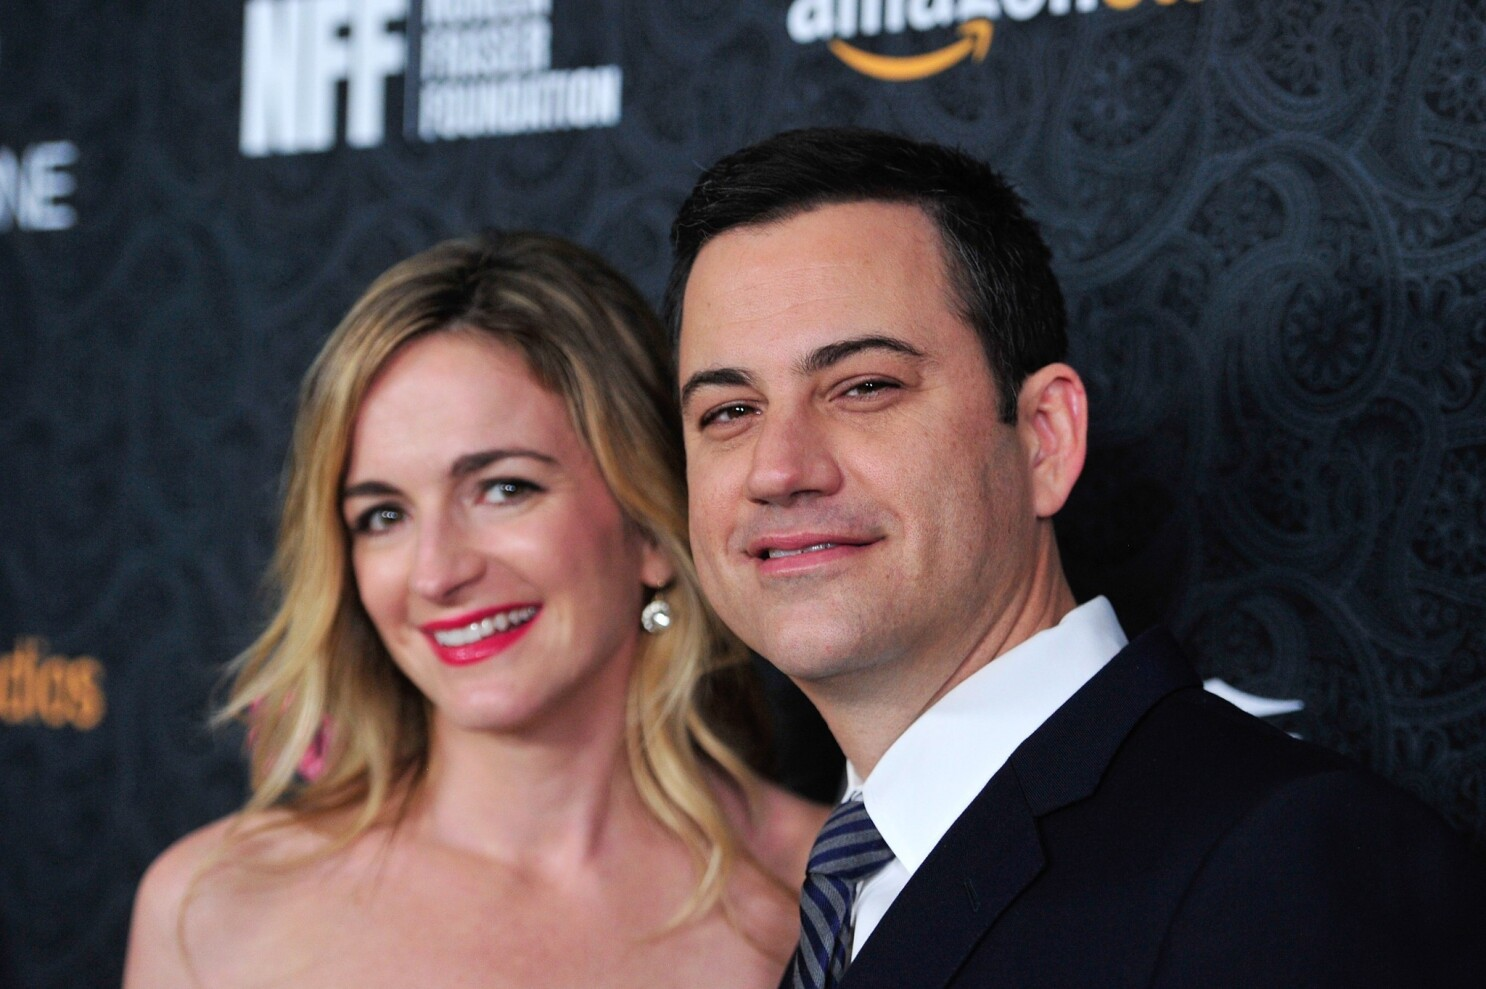 Jimmy Kimmel Wife Molly Mcnearney Welcome Baby Girl Jane Los Angeles Times Kevin, katherine, jane and william john. jimmy kimmel wife molly mcnearney